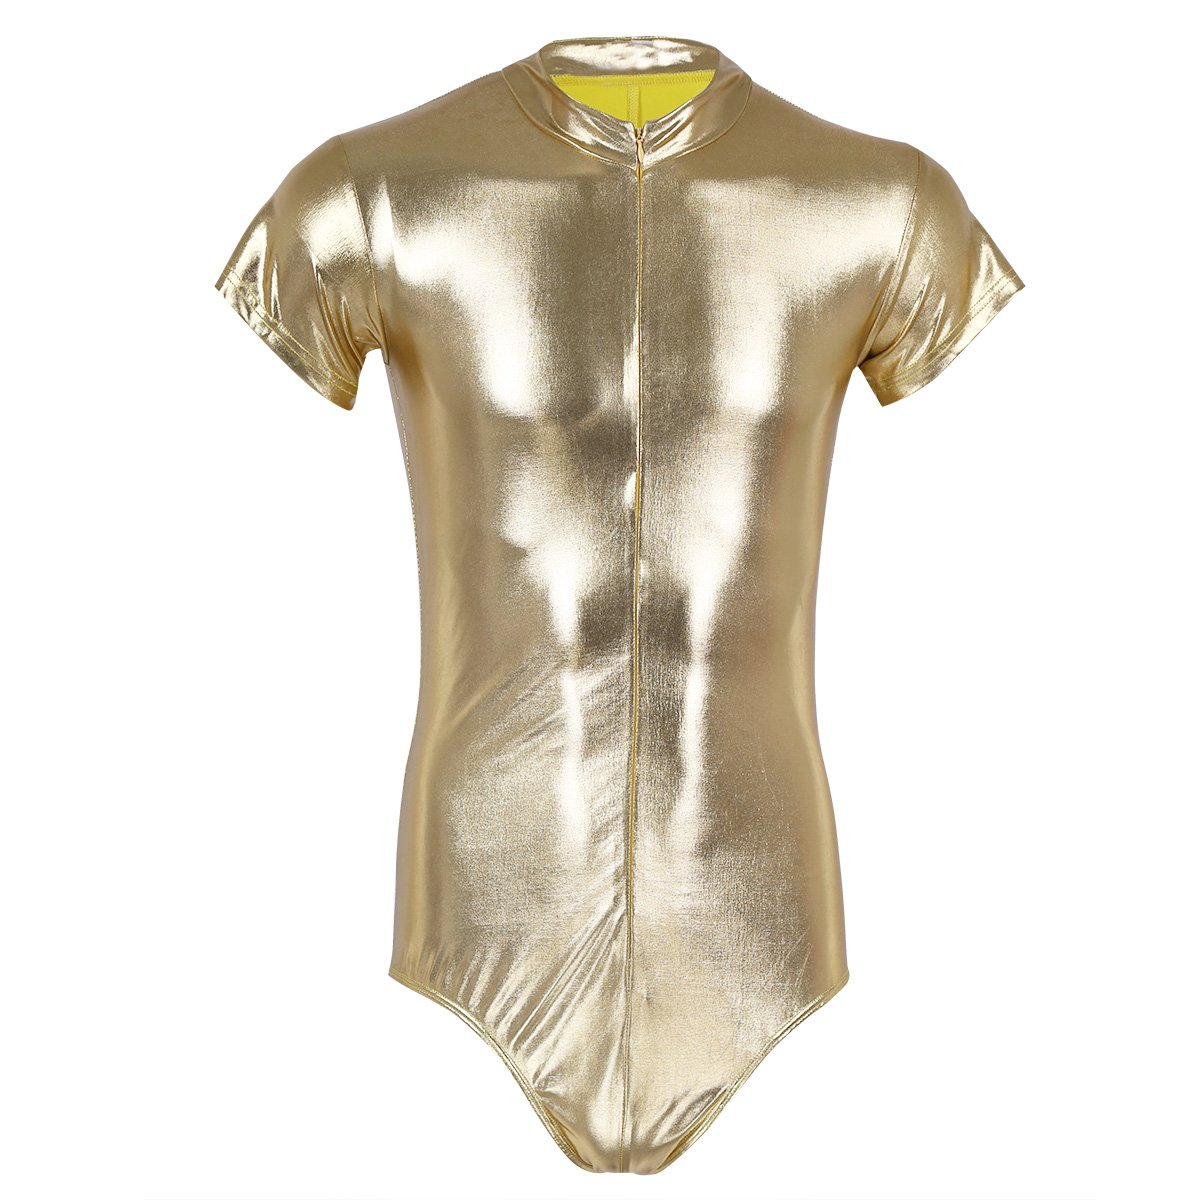 CHICTRY Men's One Piece Wet Look Shiny Metallic Leather Short Sleeve Leotard Bodysuit Gold X-Large